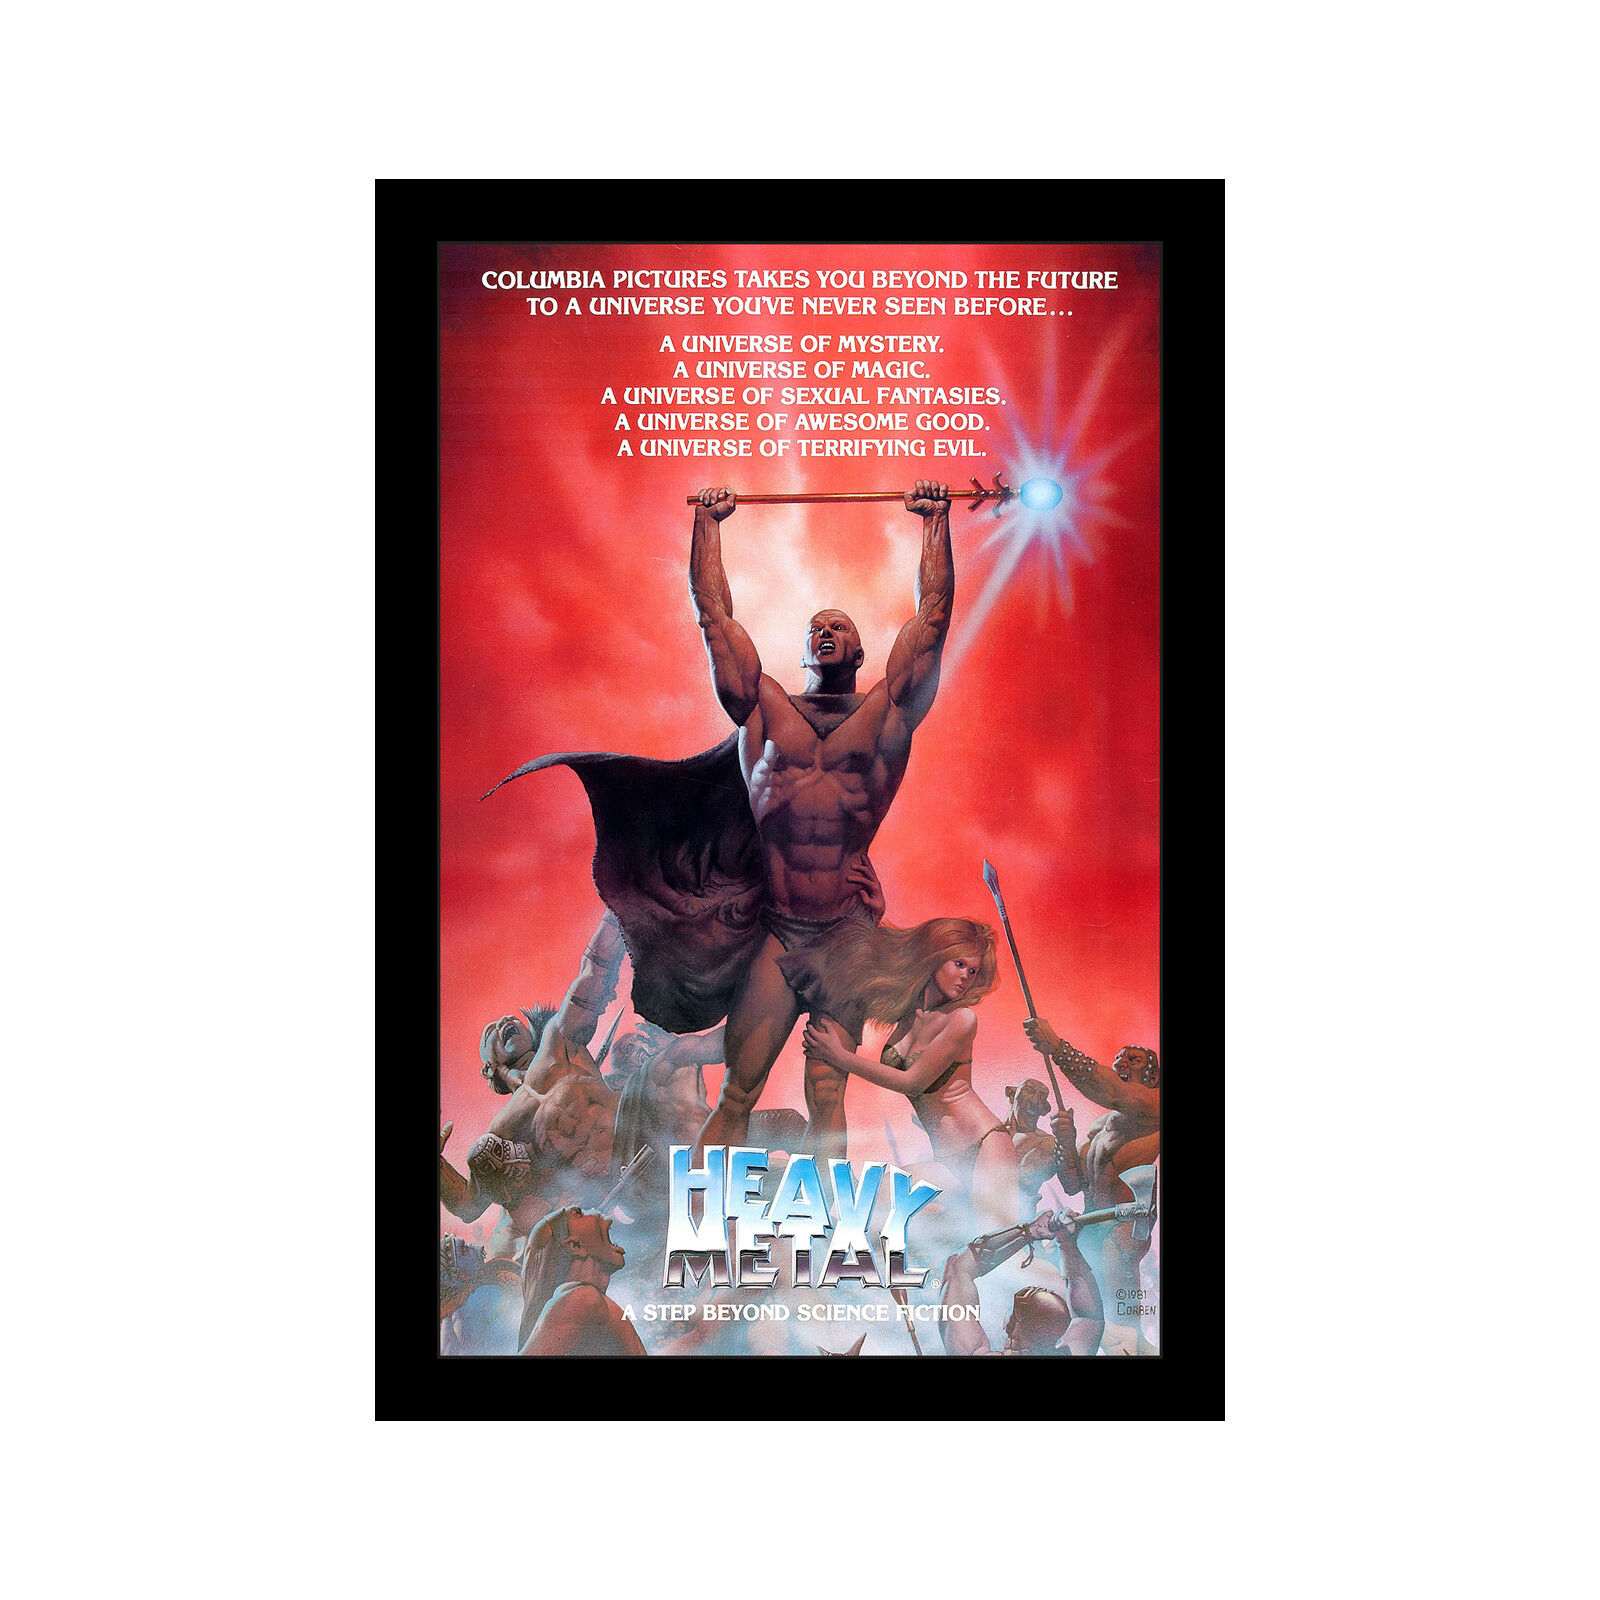 HEAVY METAL - 11x17 Framed Movie Poster by Wallspace